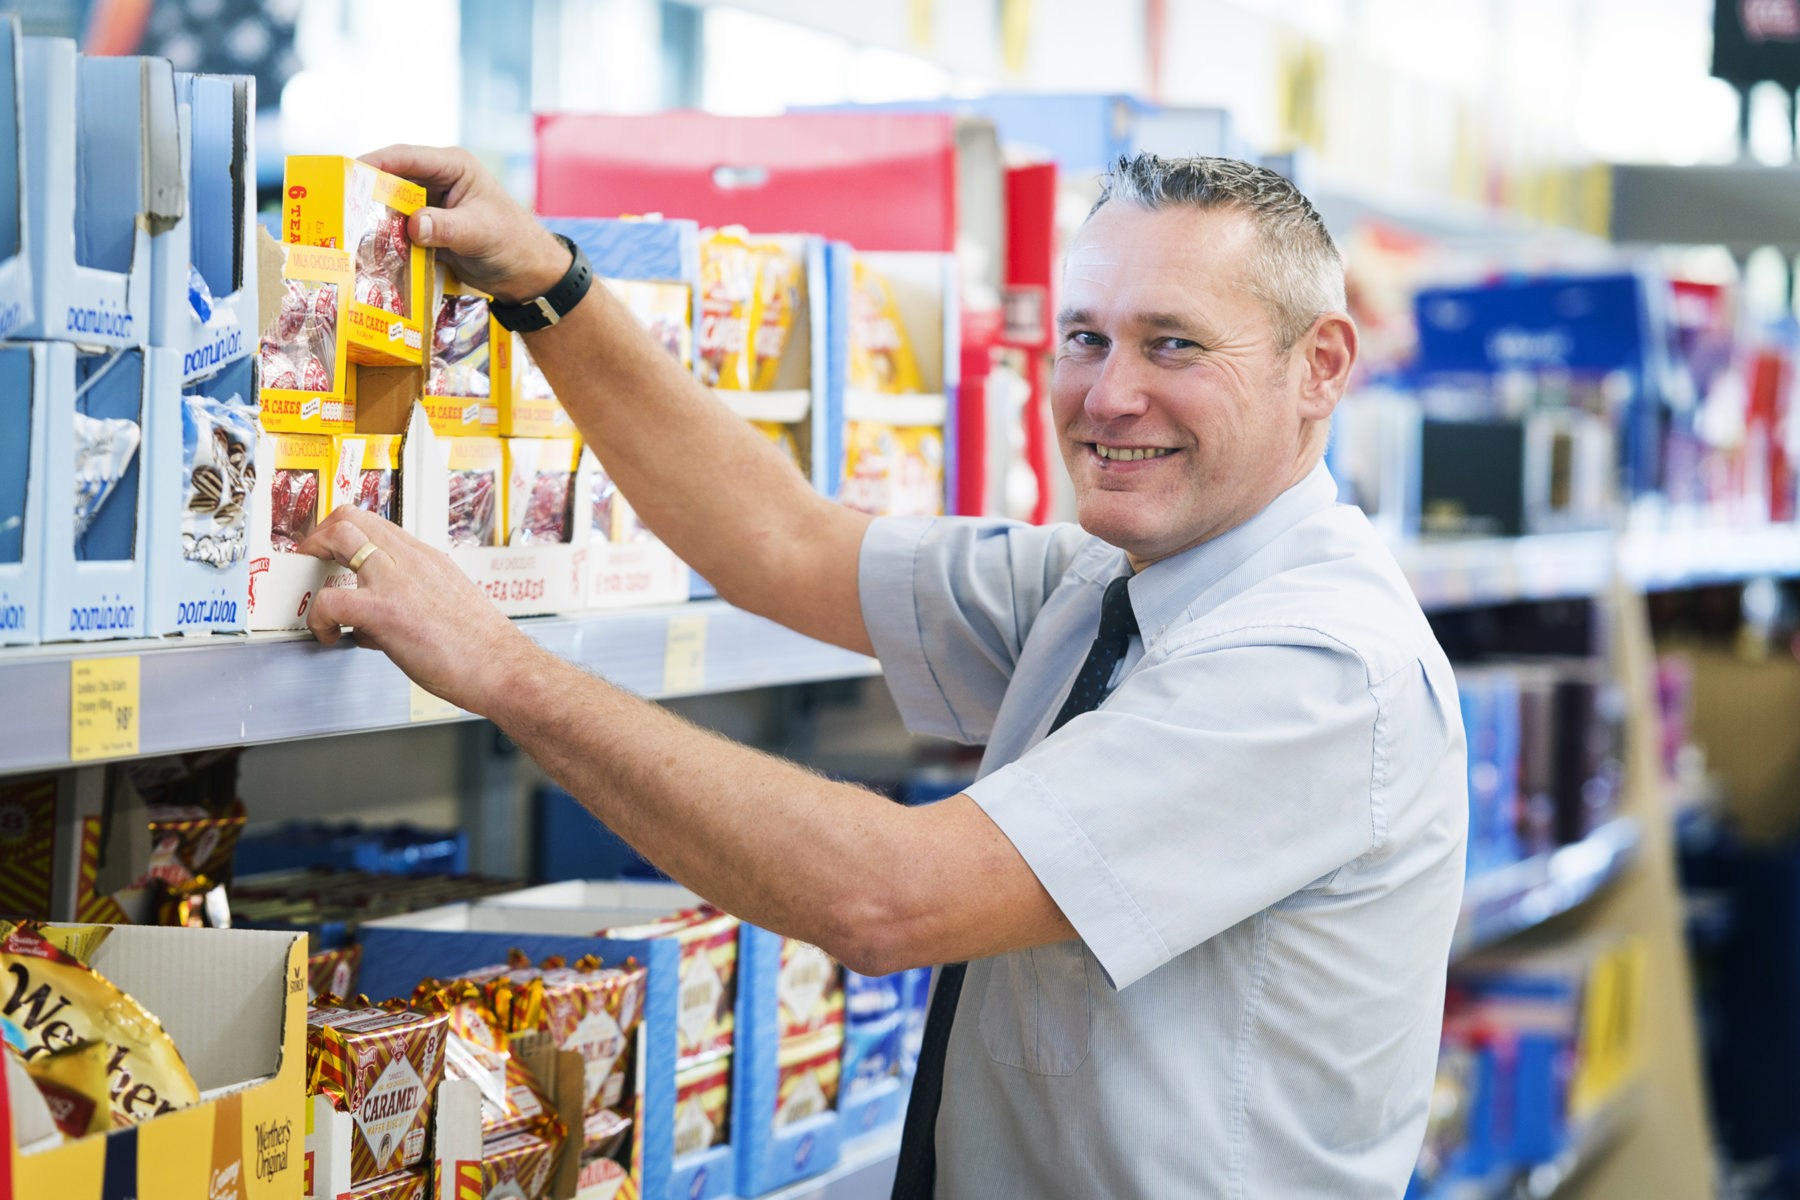 Store Manager is a Force to be reckoned with at Aldi